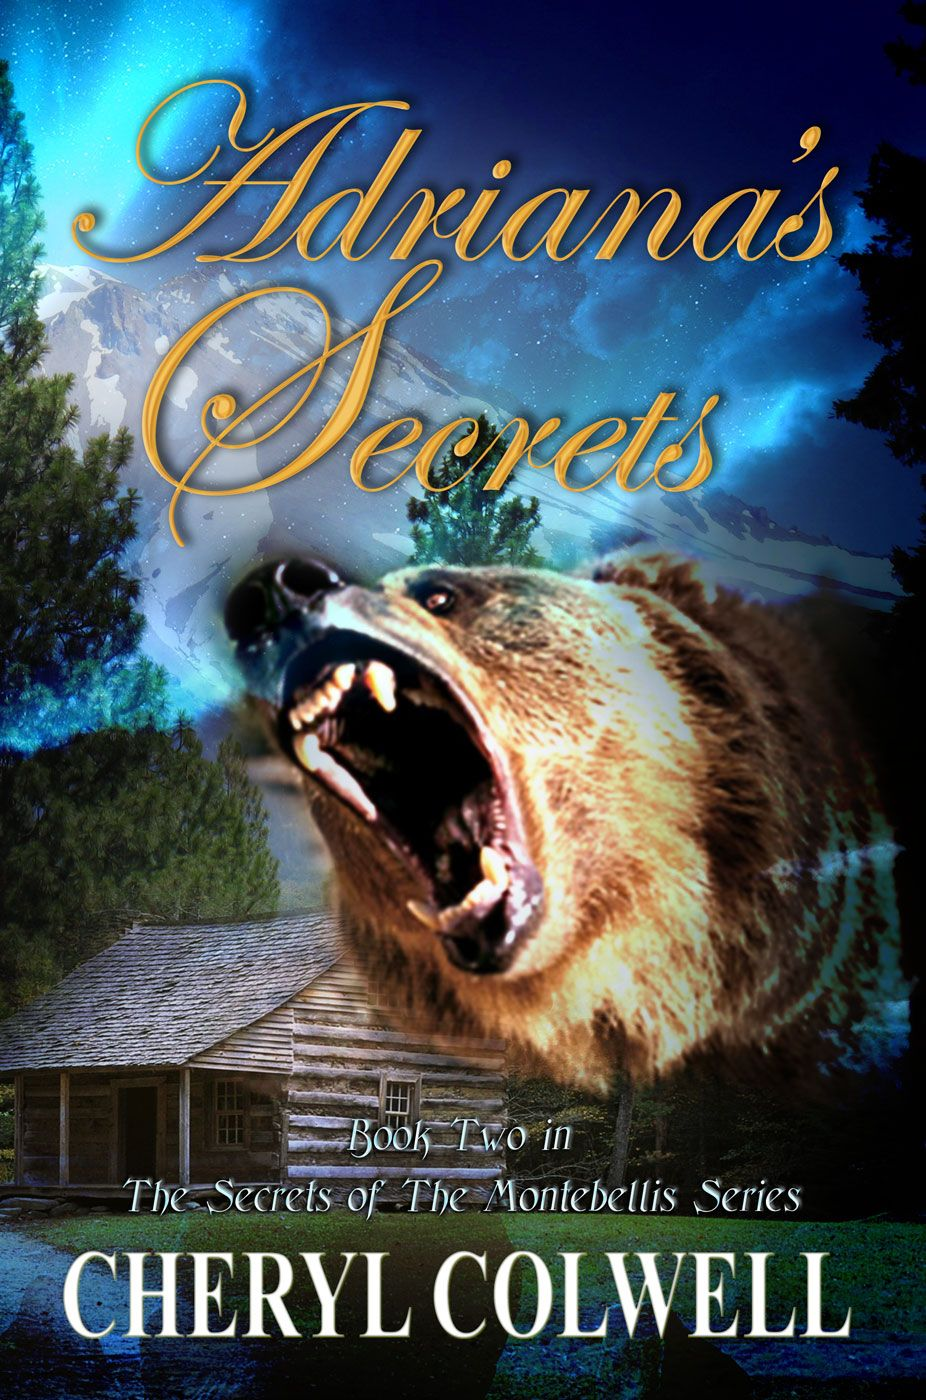 Christian Suspense: The Secrets of the Montebellis Series, Book 2